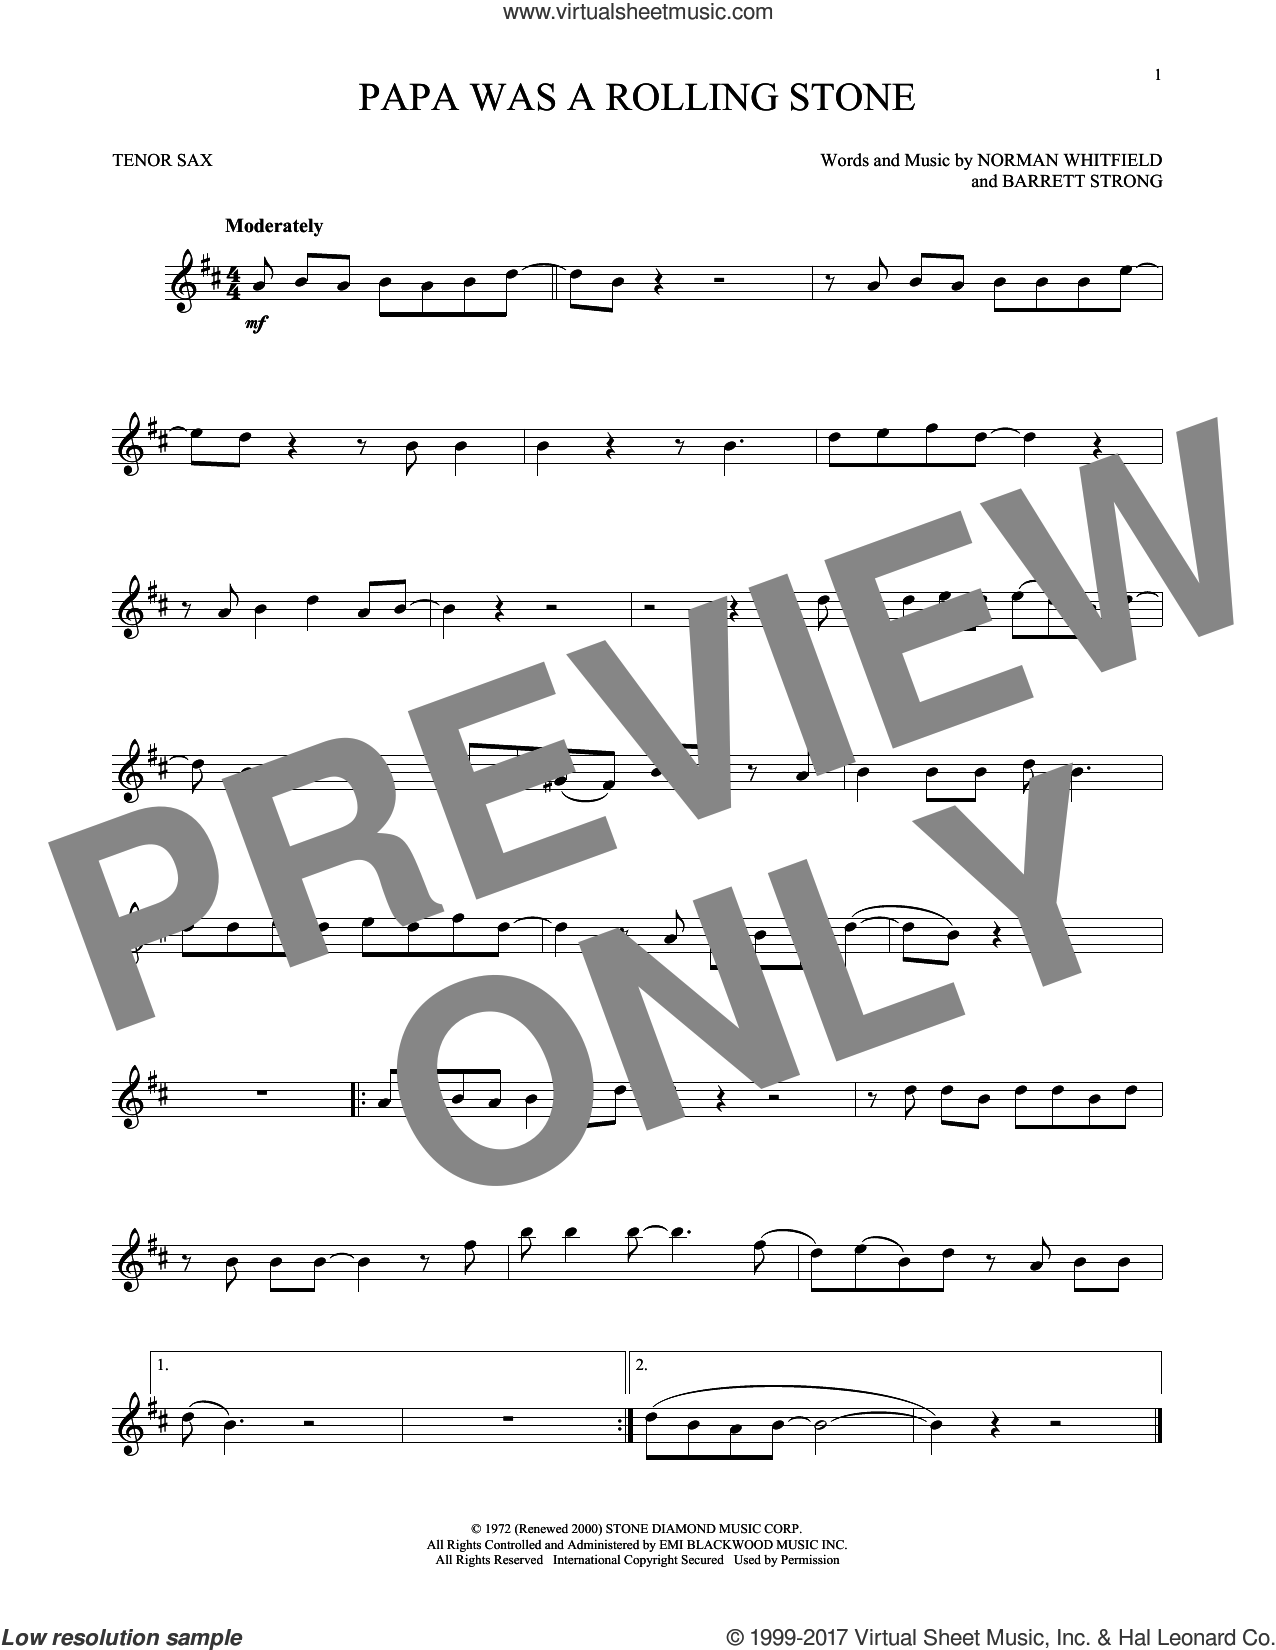 Papa Was A Rollin' Stone sheet music for tenor saxophone solo by The Temptations, Barrett Strong and Norman Whitfield, intermediate skill level